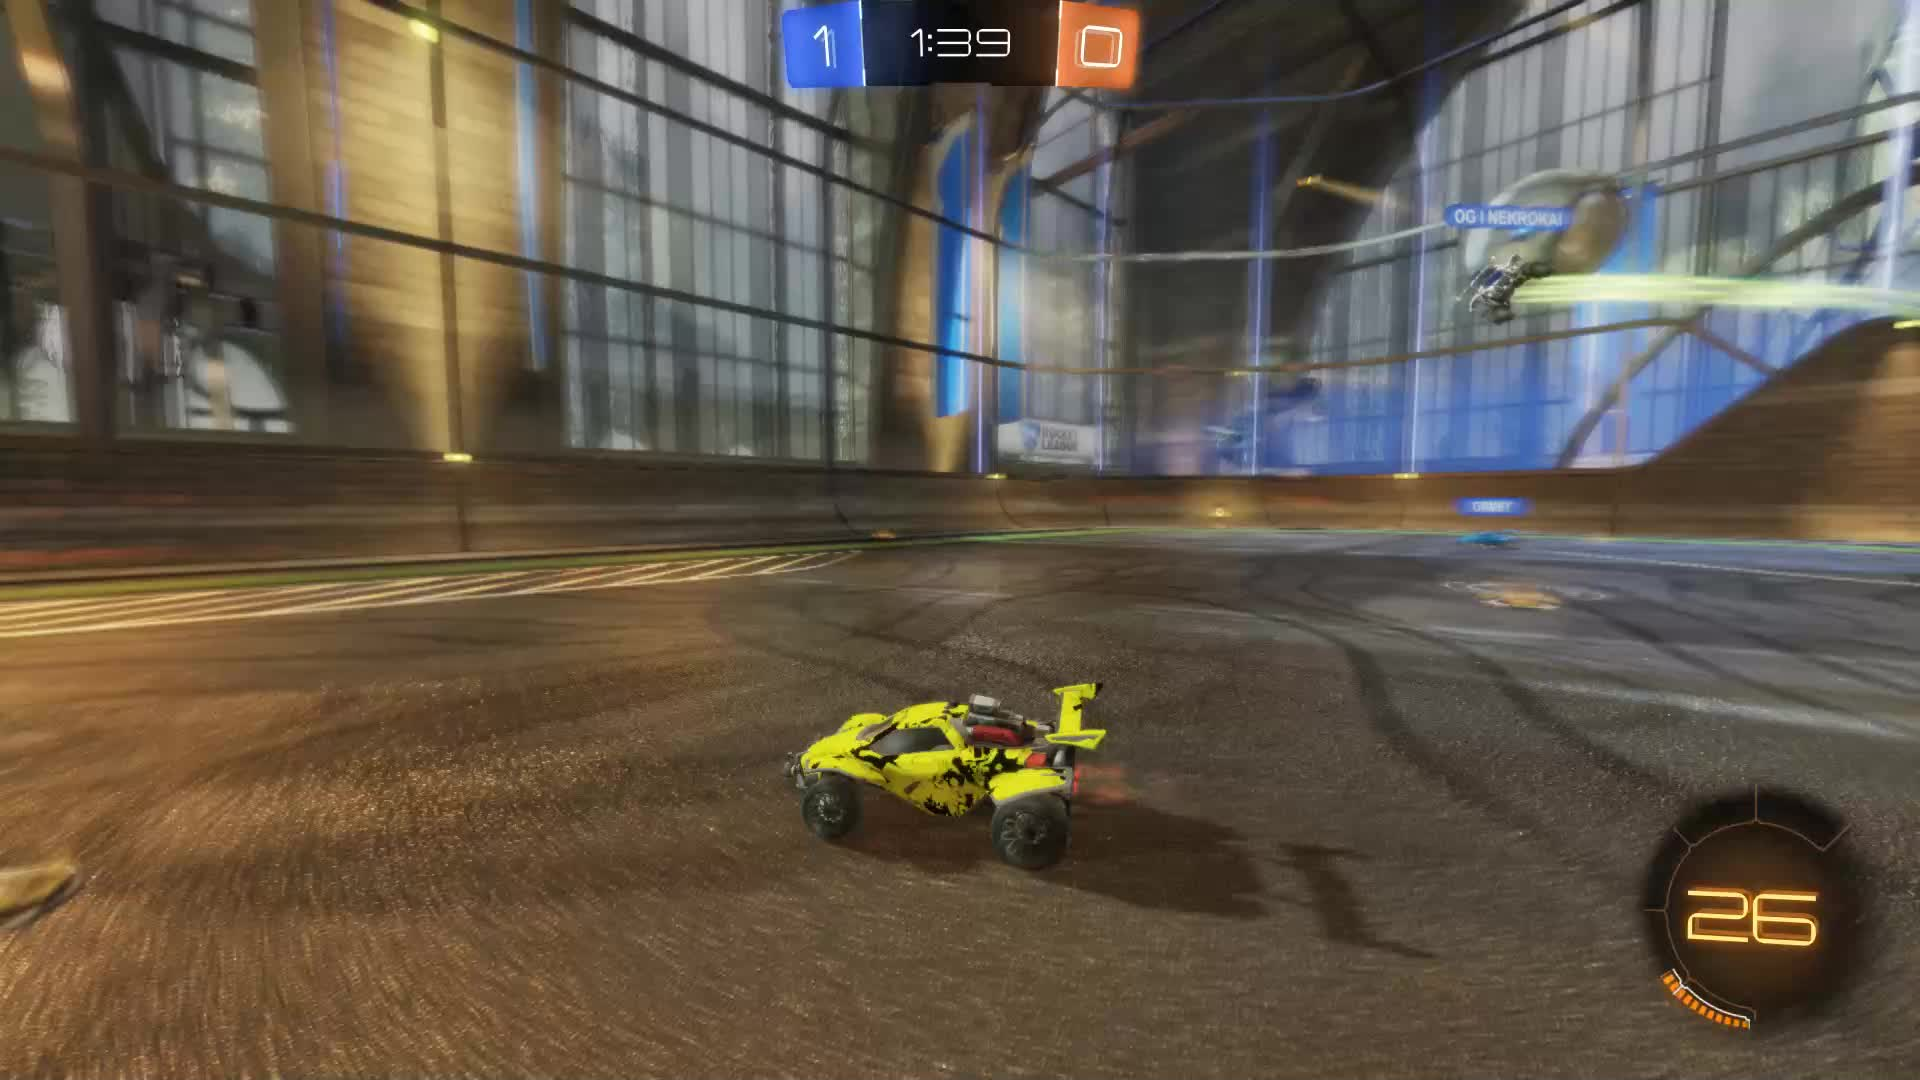 GatorMelon LFT, Gif Your Game, GifYourGame, Rocket League, RocketLeague, Goal 2: GatorMelon LFT GIFs